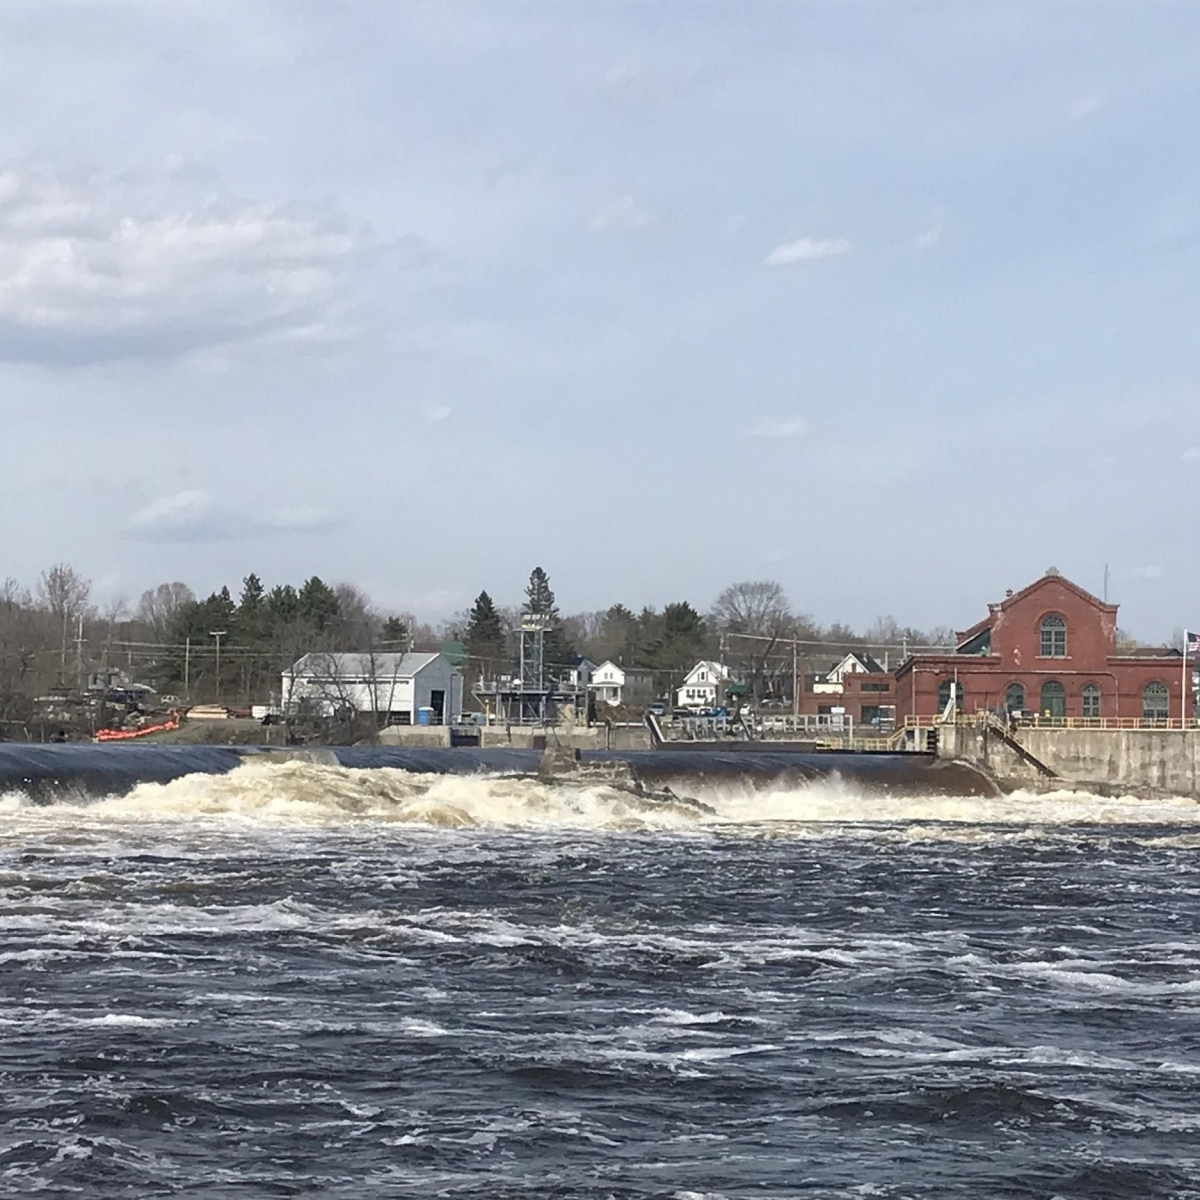 Milford Dam in Maine's Penobscot River